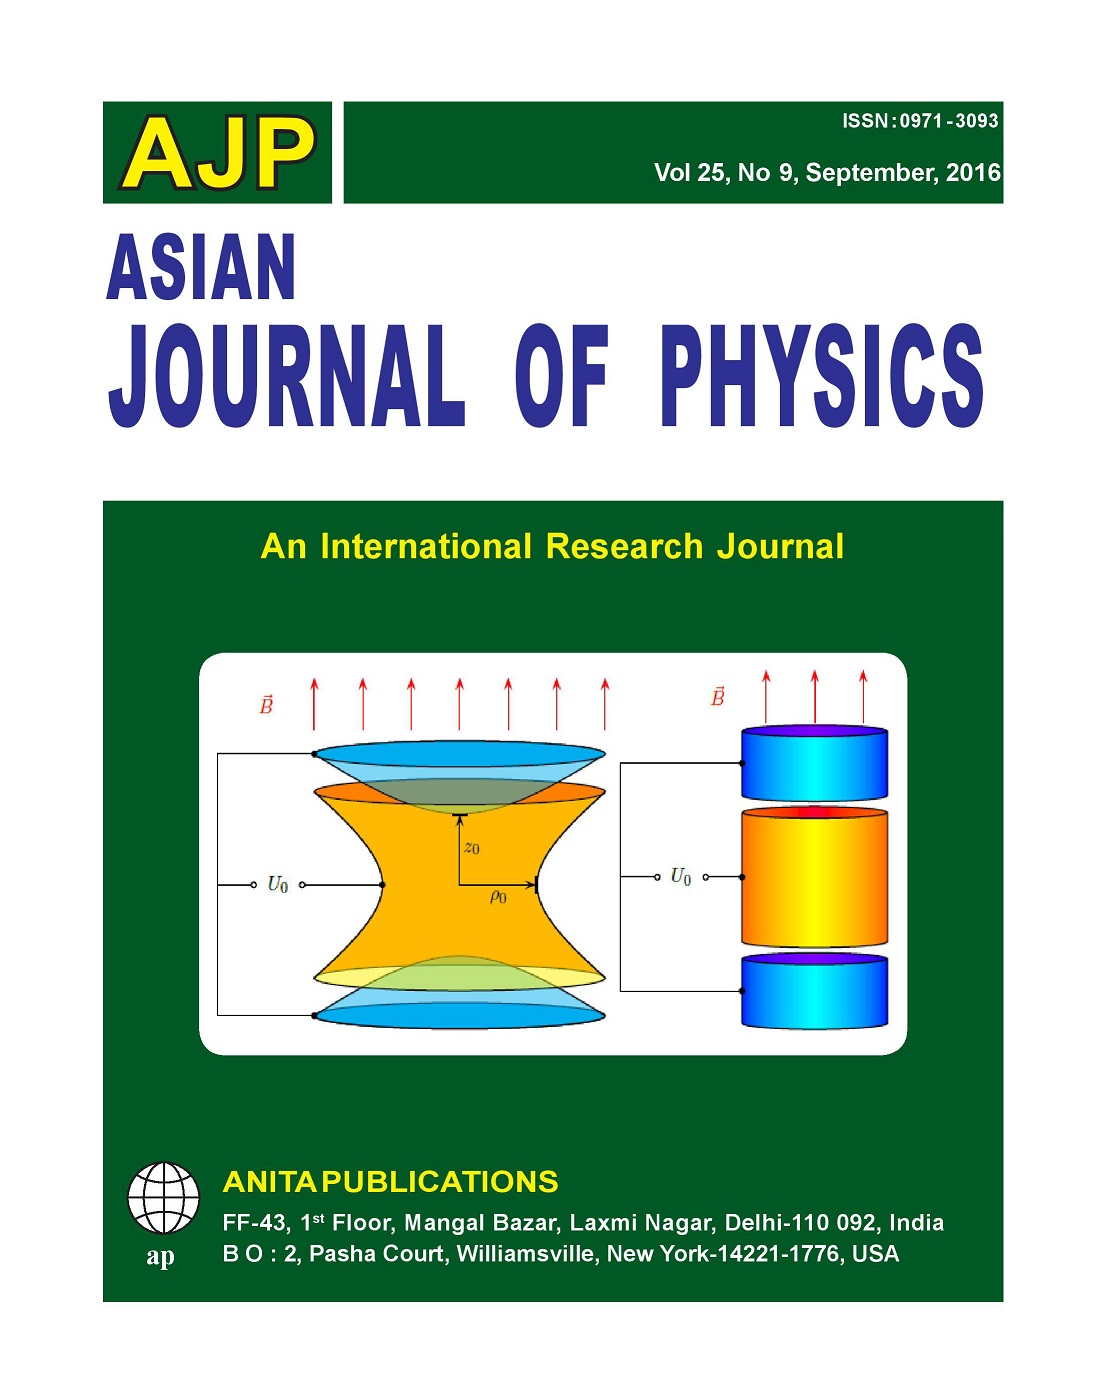 AJP Vol 25 No 9,2016